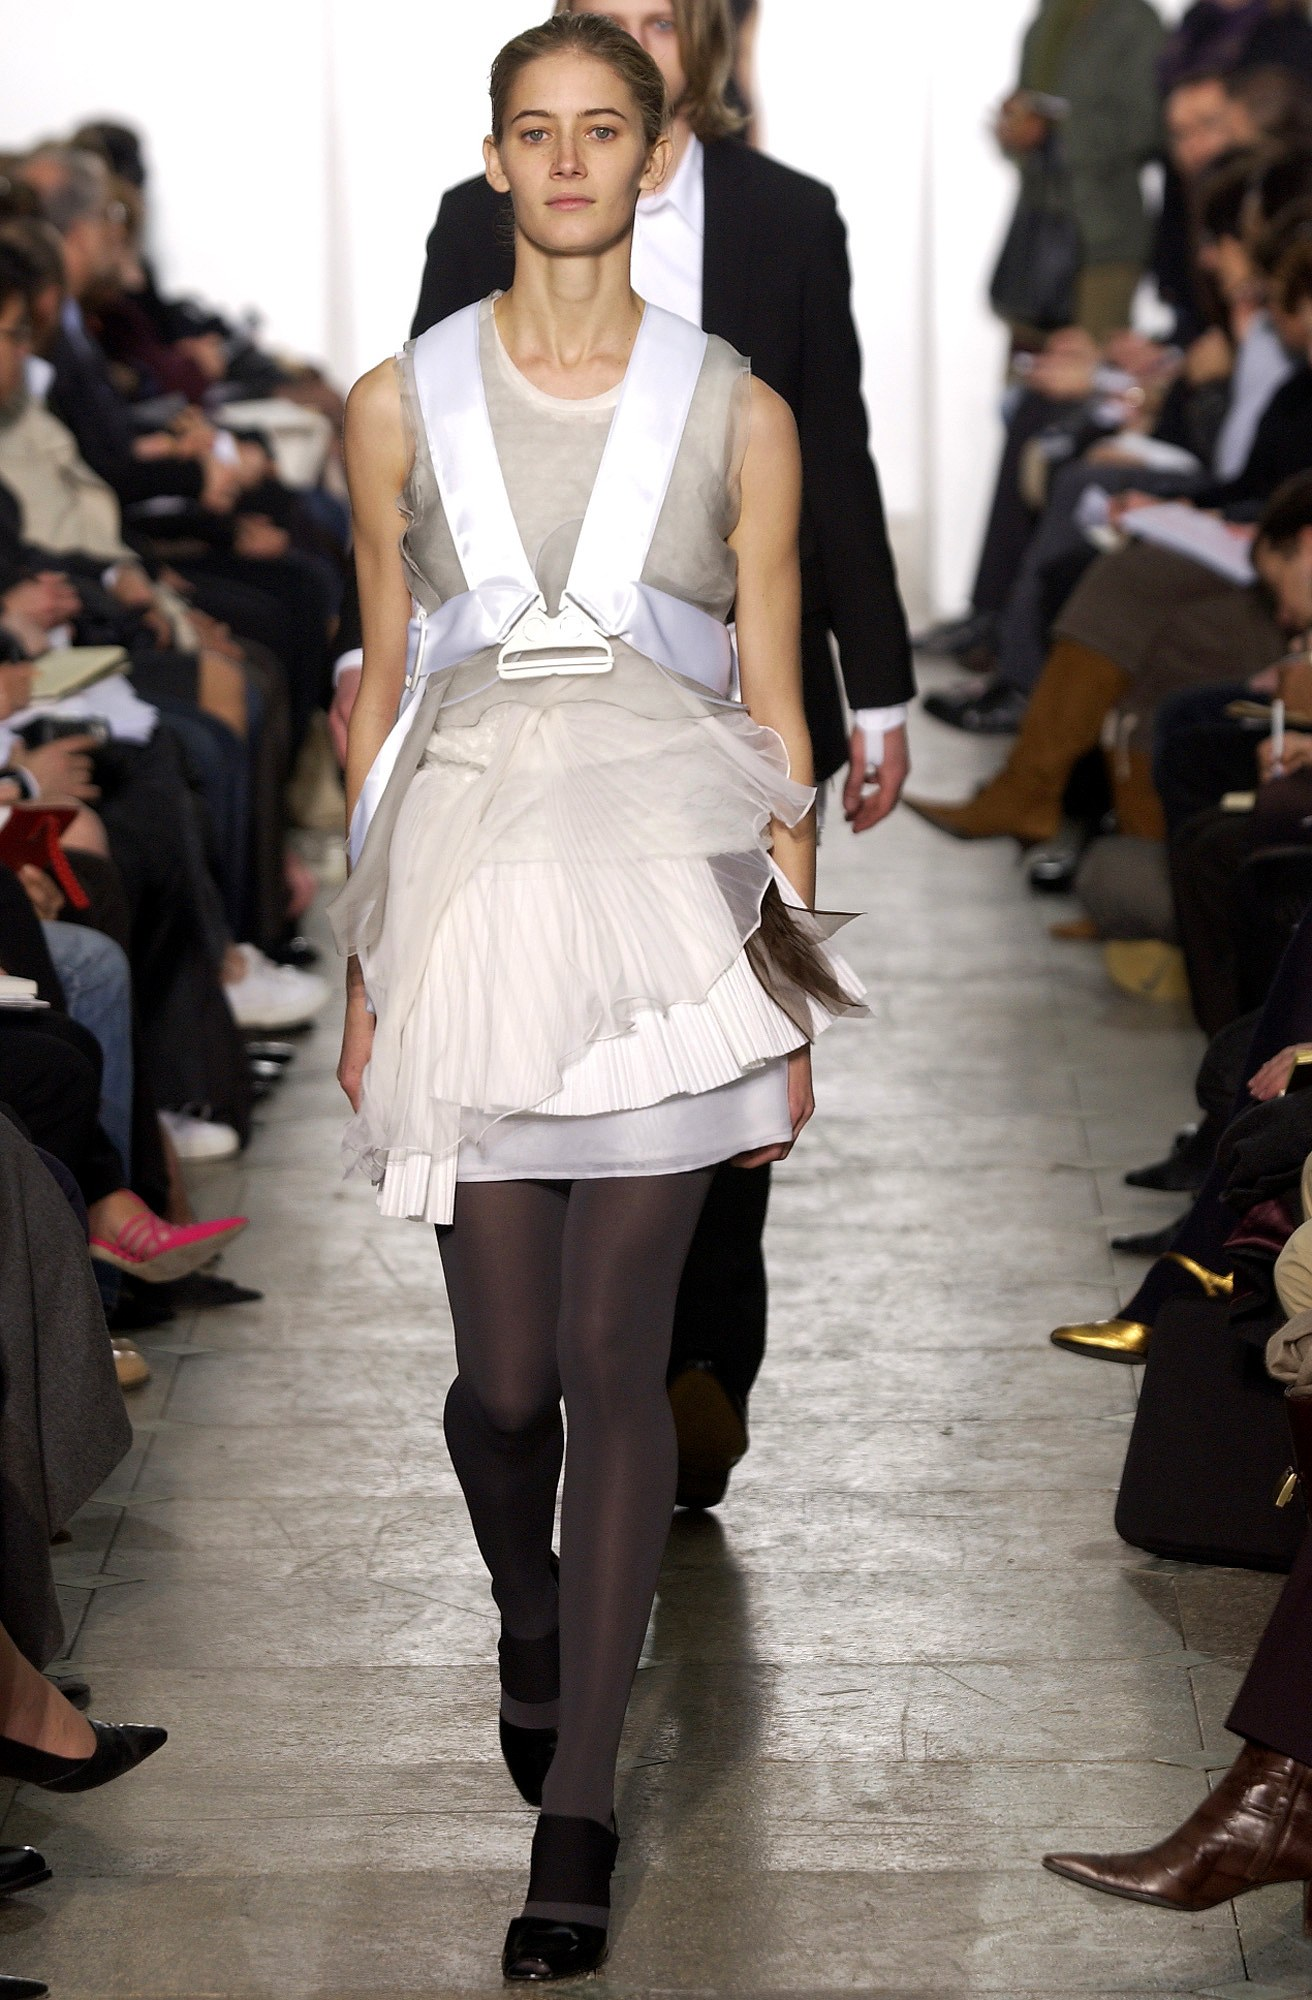 helmut-lang-fall-2003-ready-to-wear-00450h-valerie-sipp.jpg